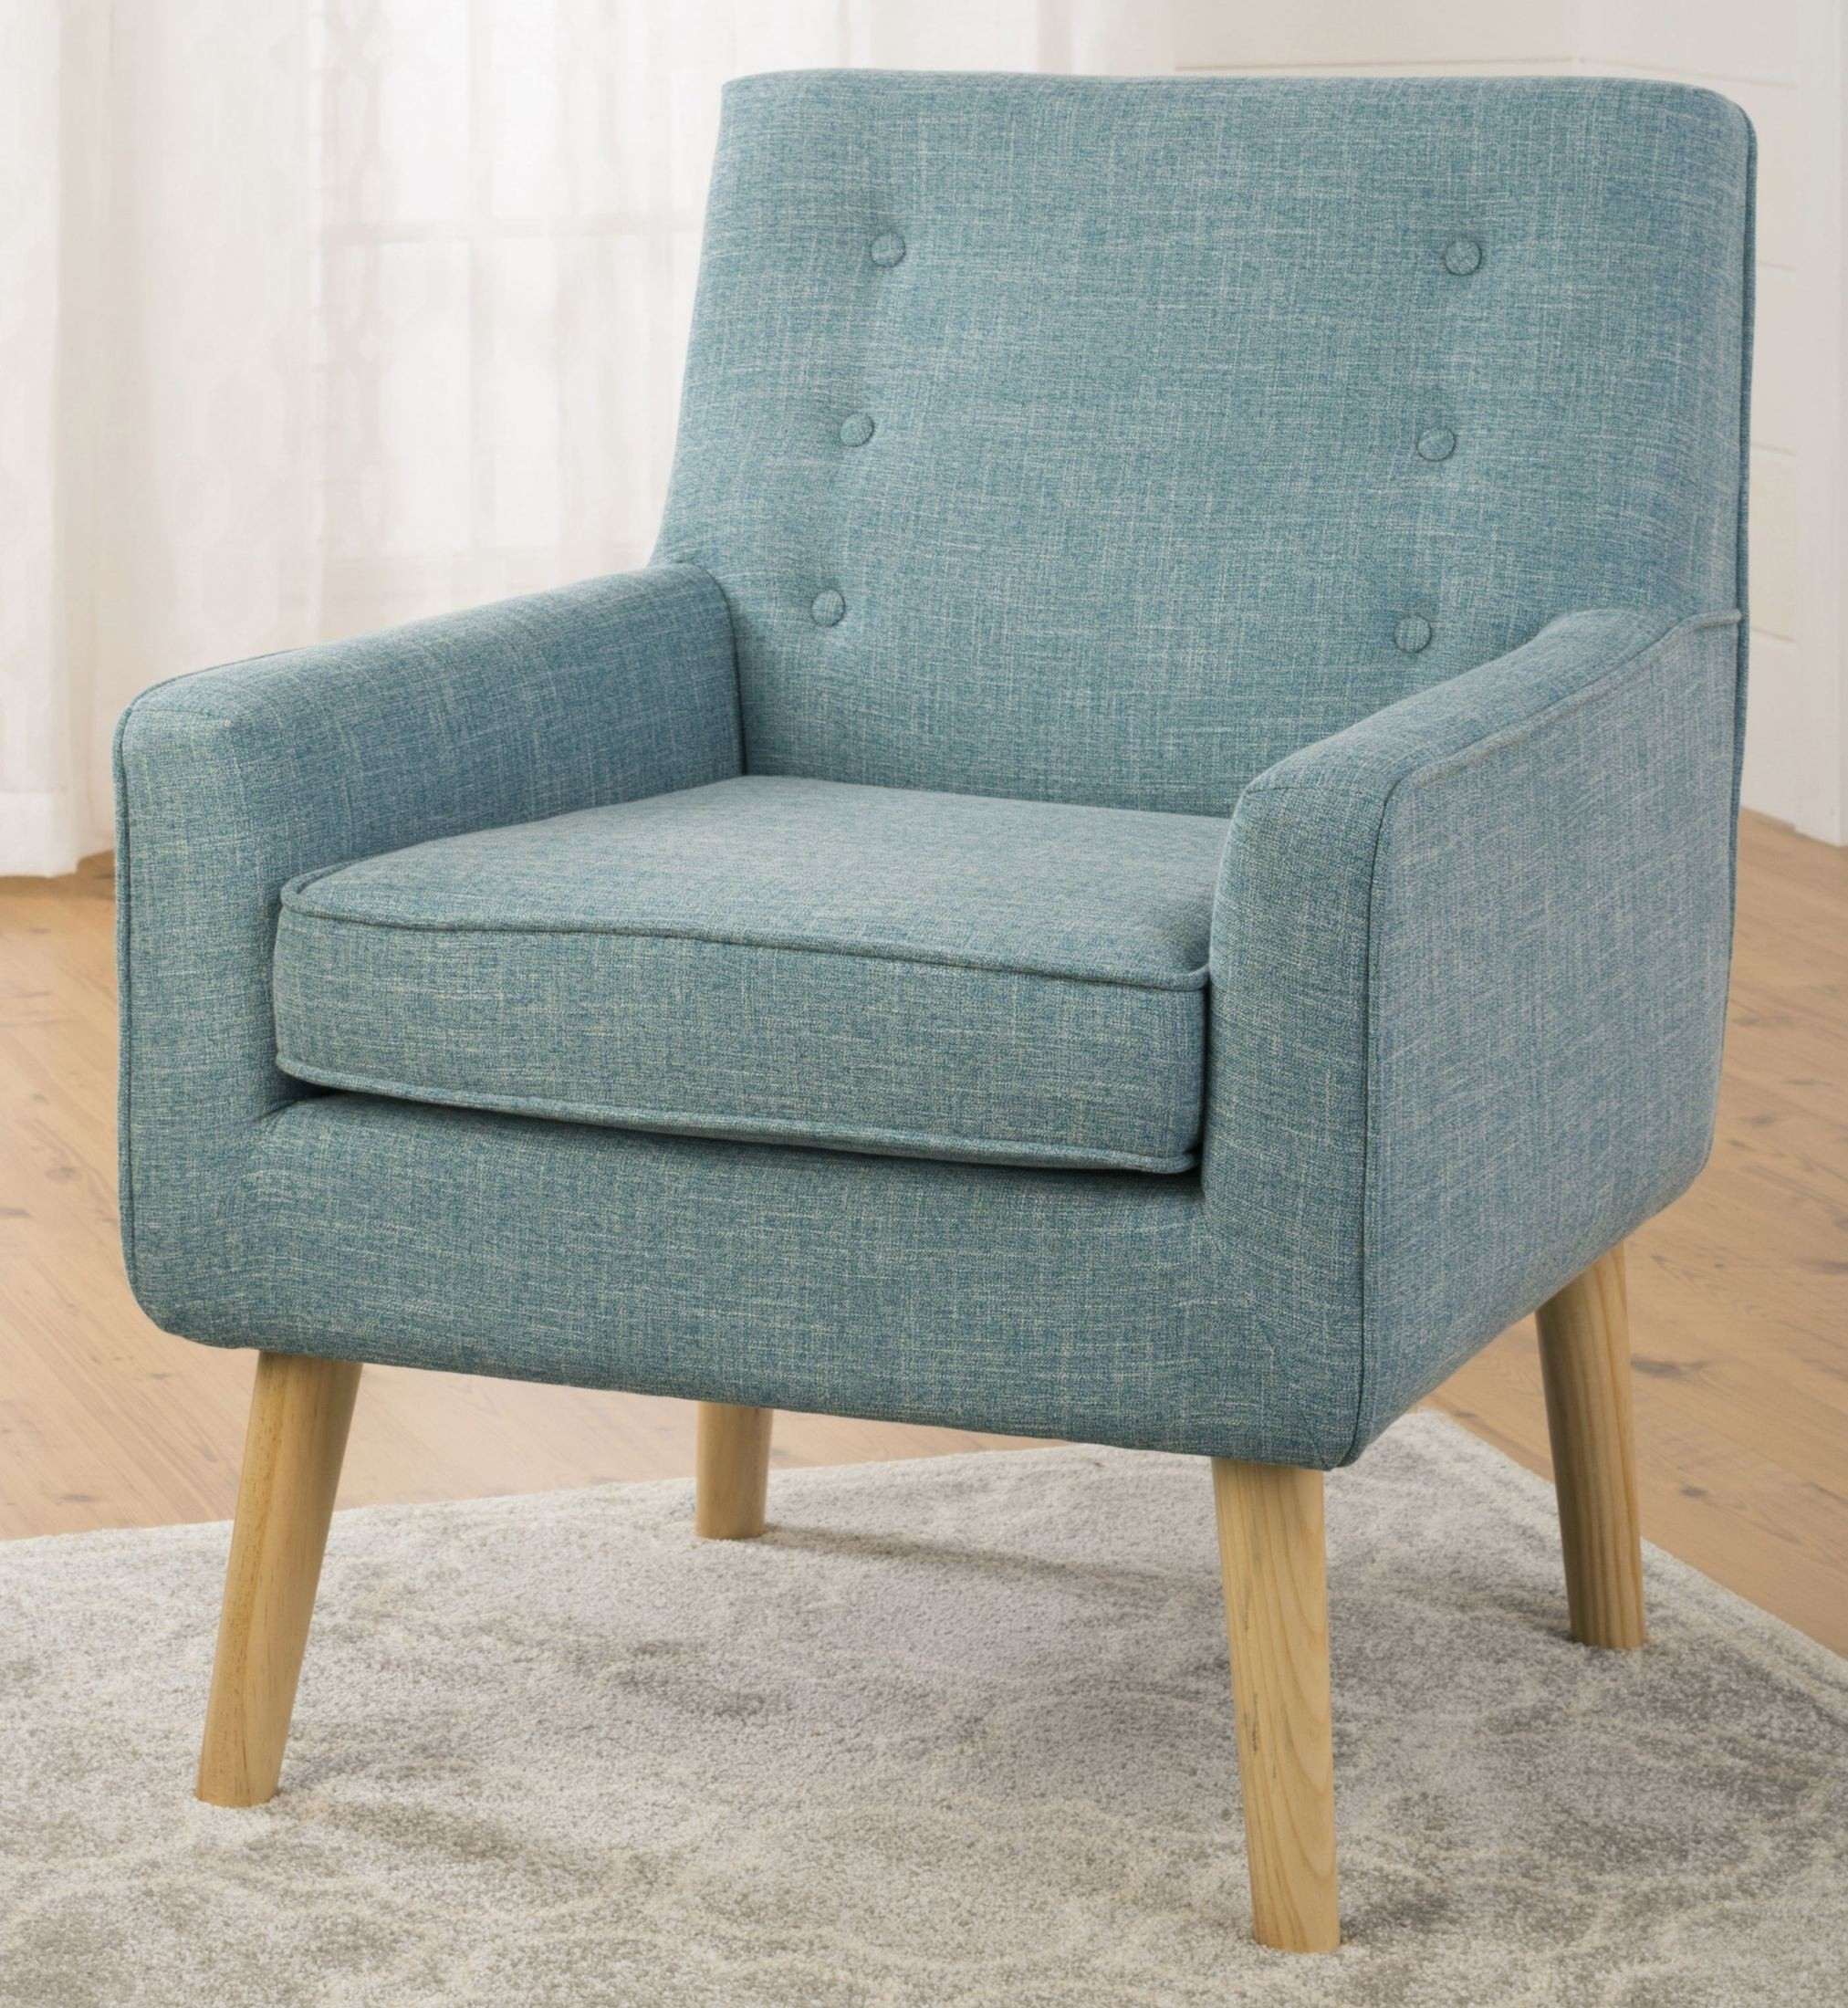 Peacock Blue Accent Chair Mila Mod Peacock Blue Accent Chair Mila Ch Peacock Jofran